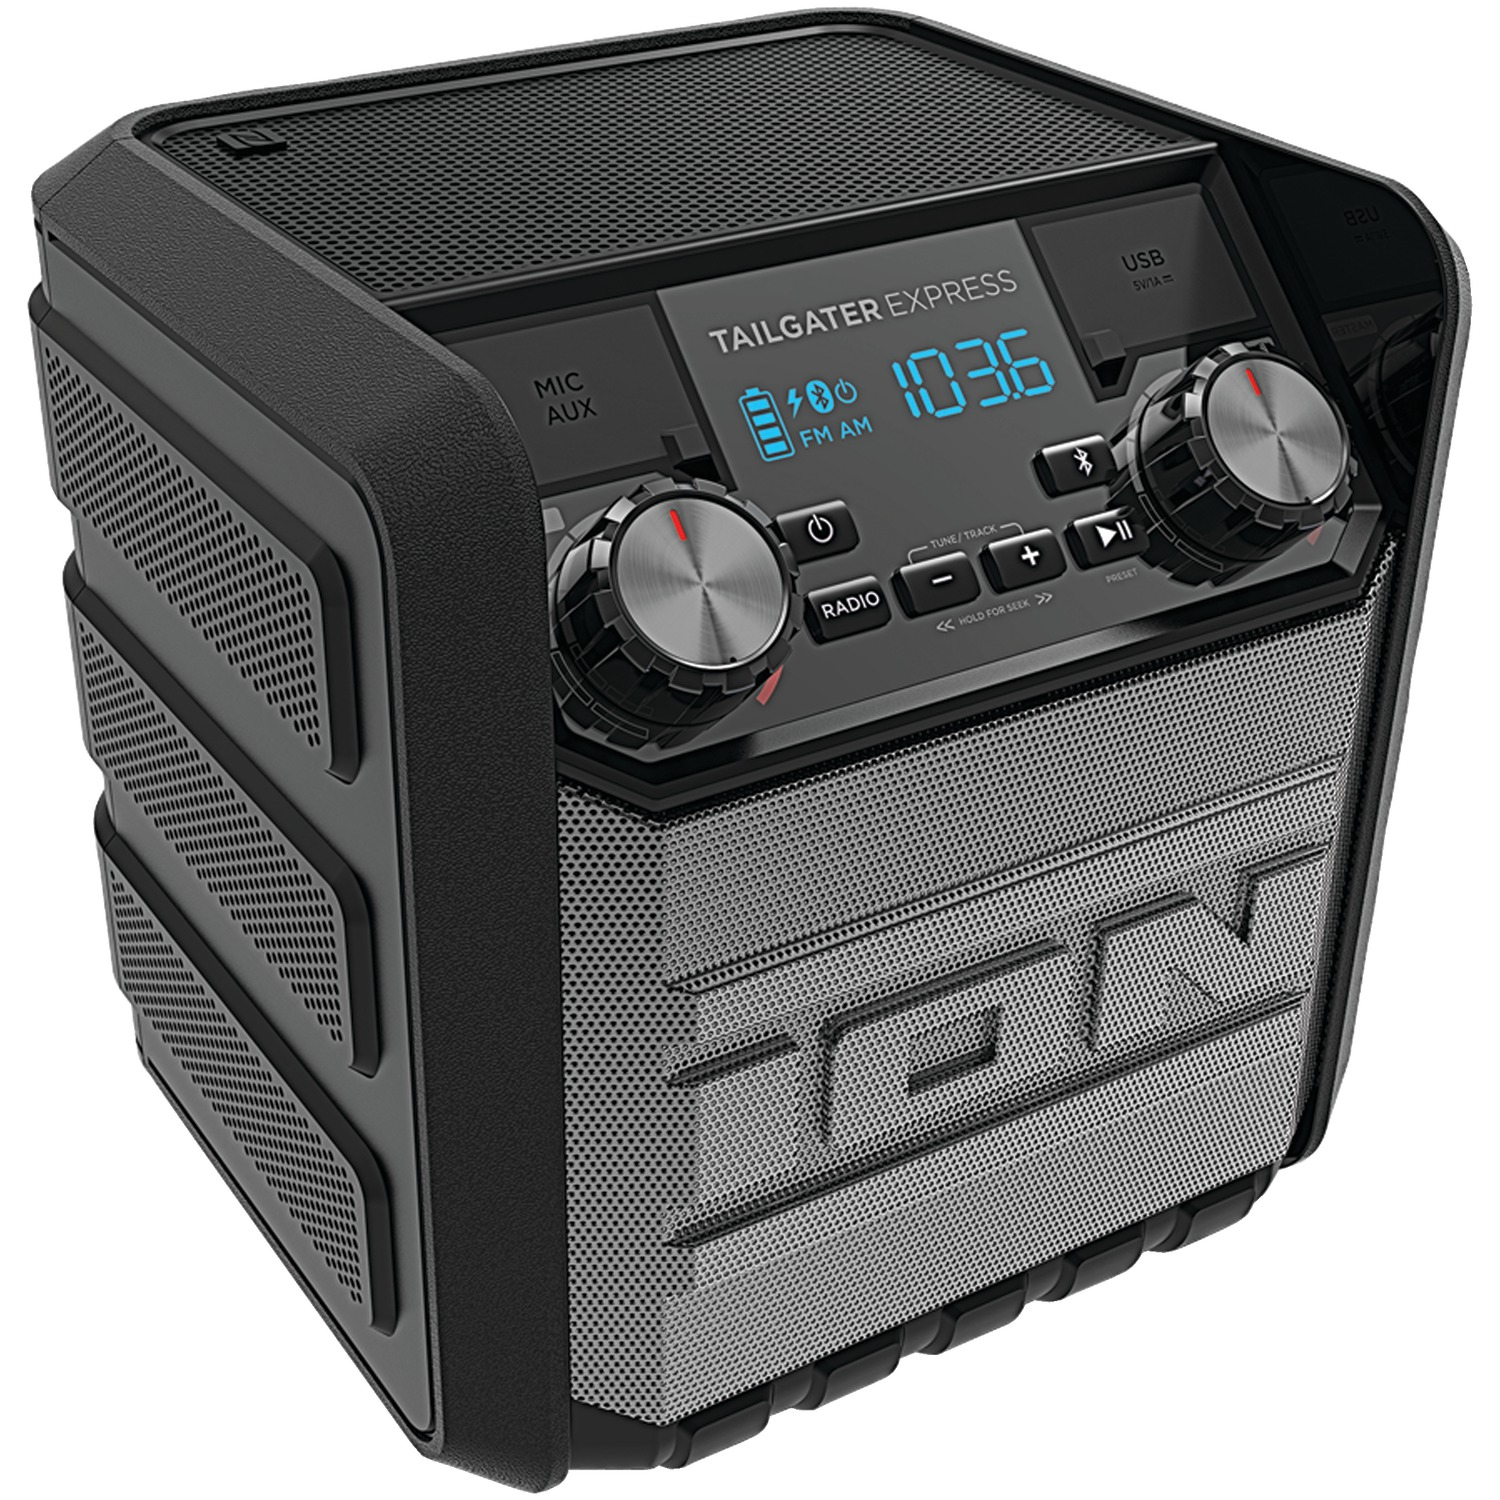 Ion IPA70 Tailgater Express